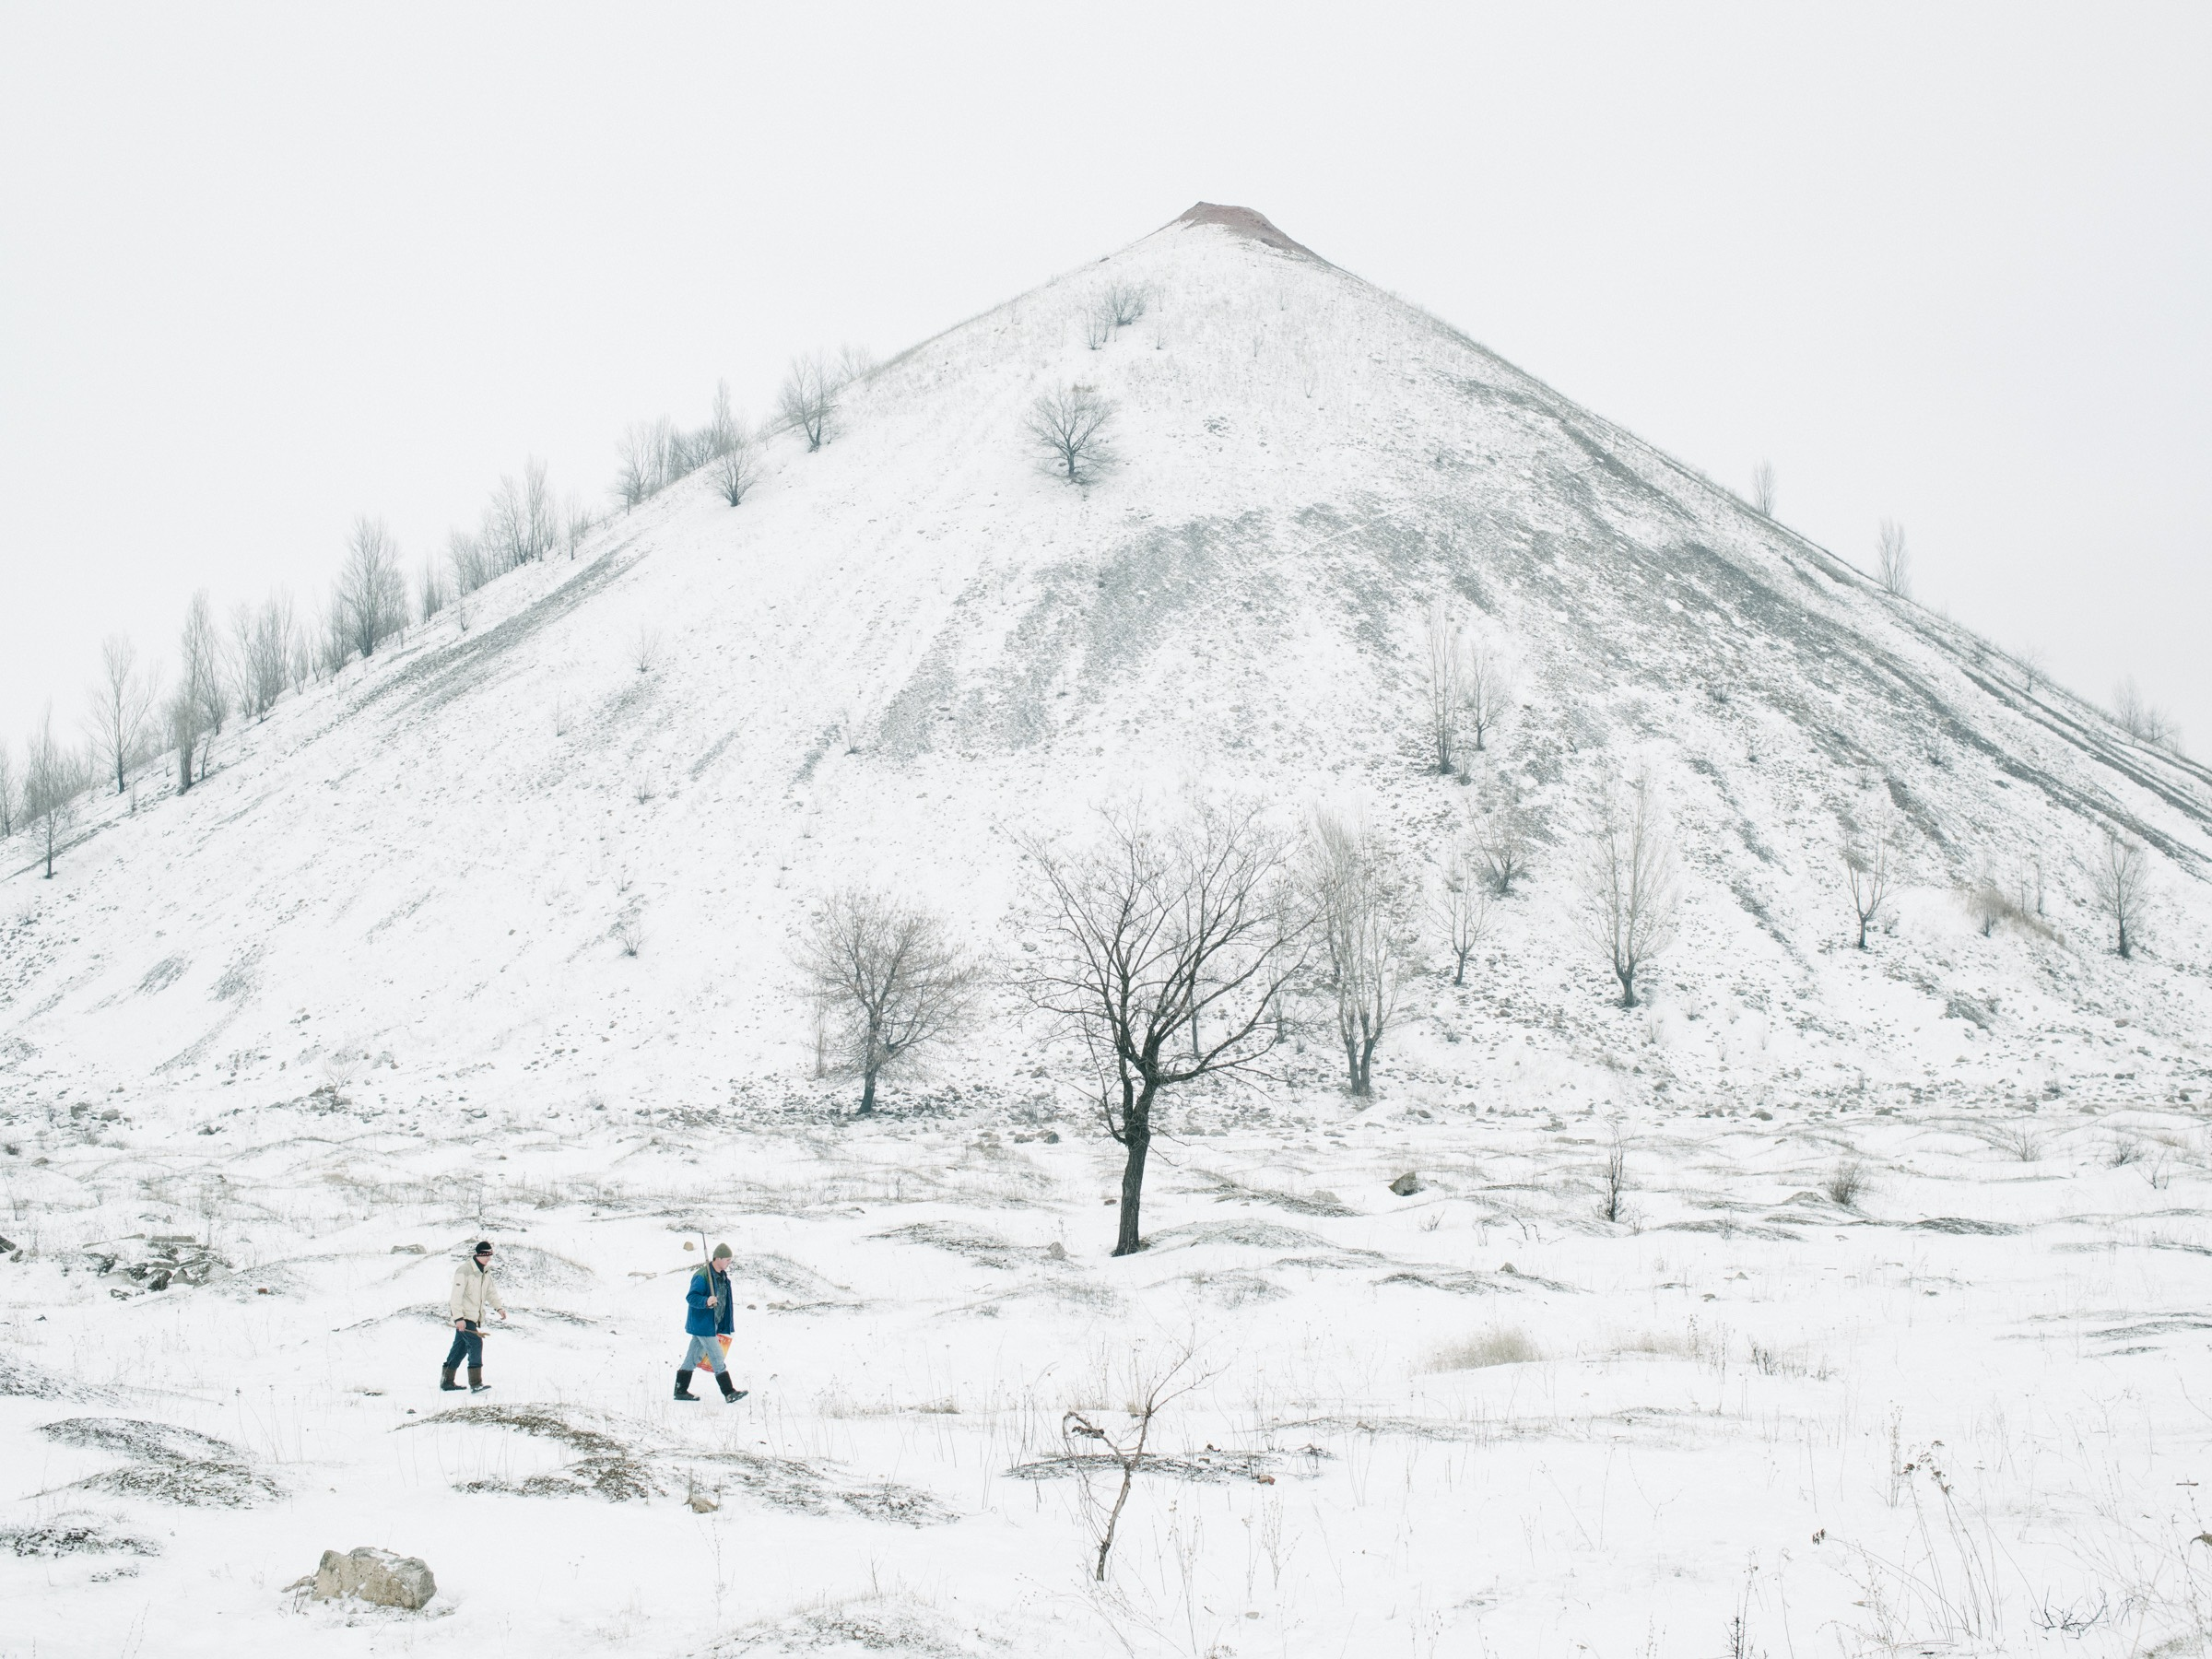 One of the many slag heaps that are dotted around Dzerzhynsk, January 2016